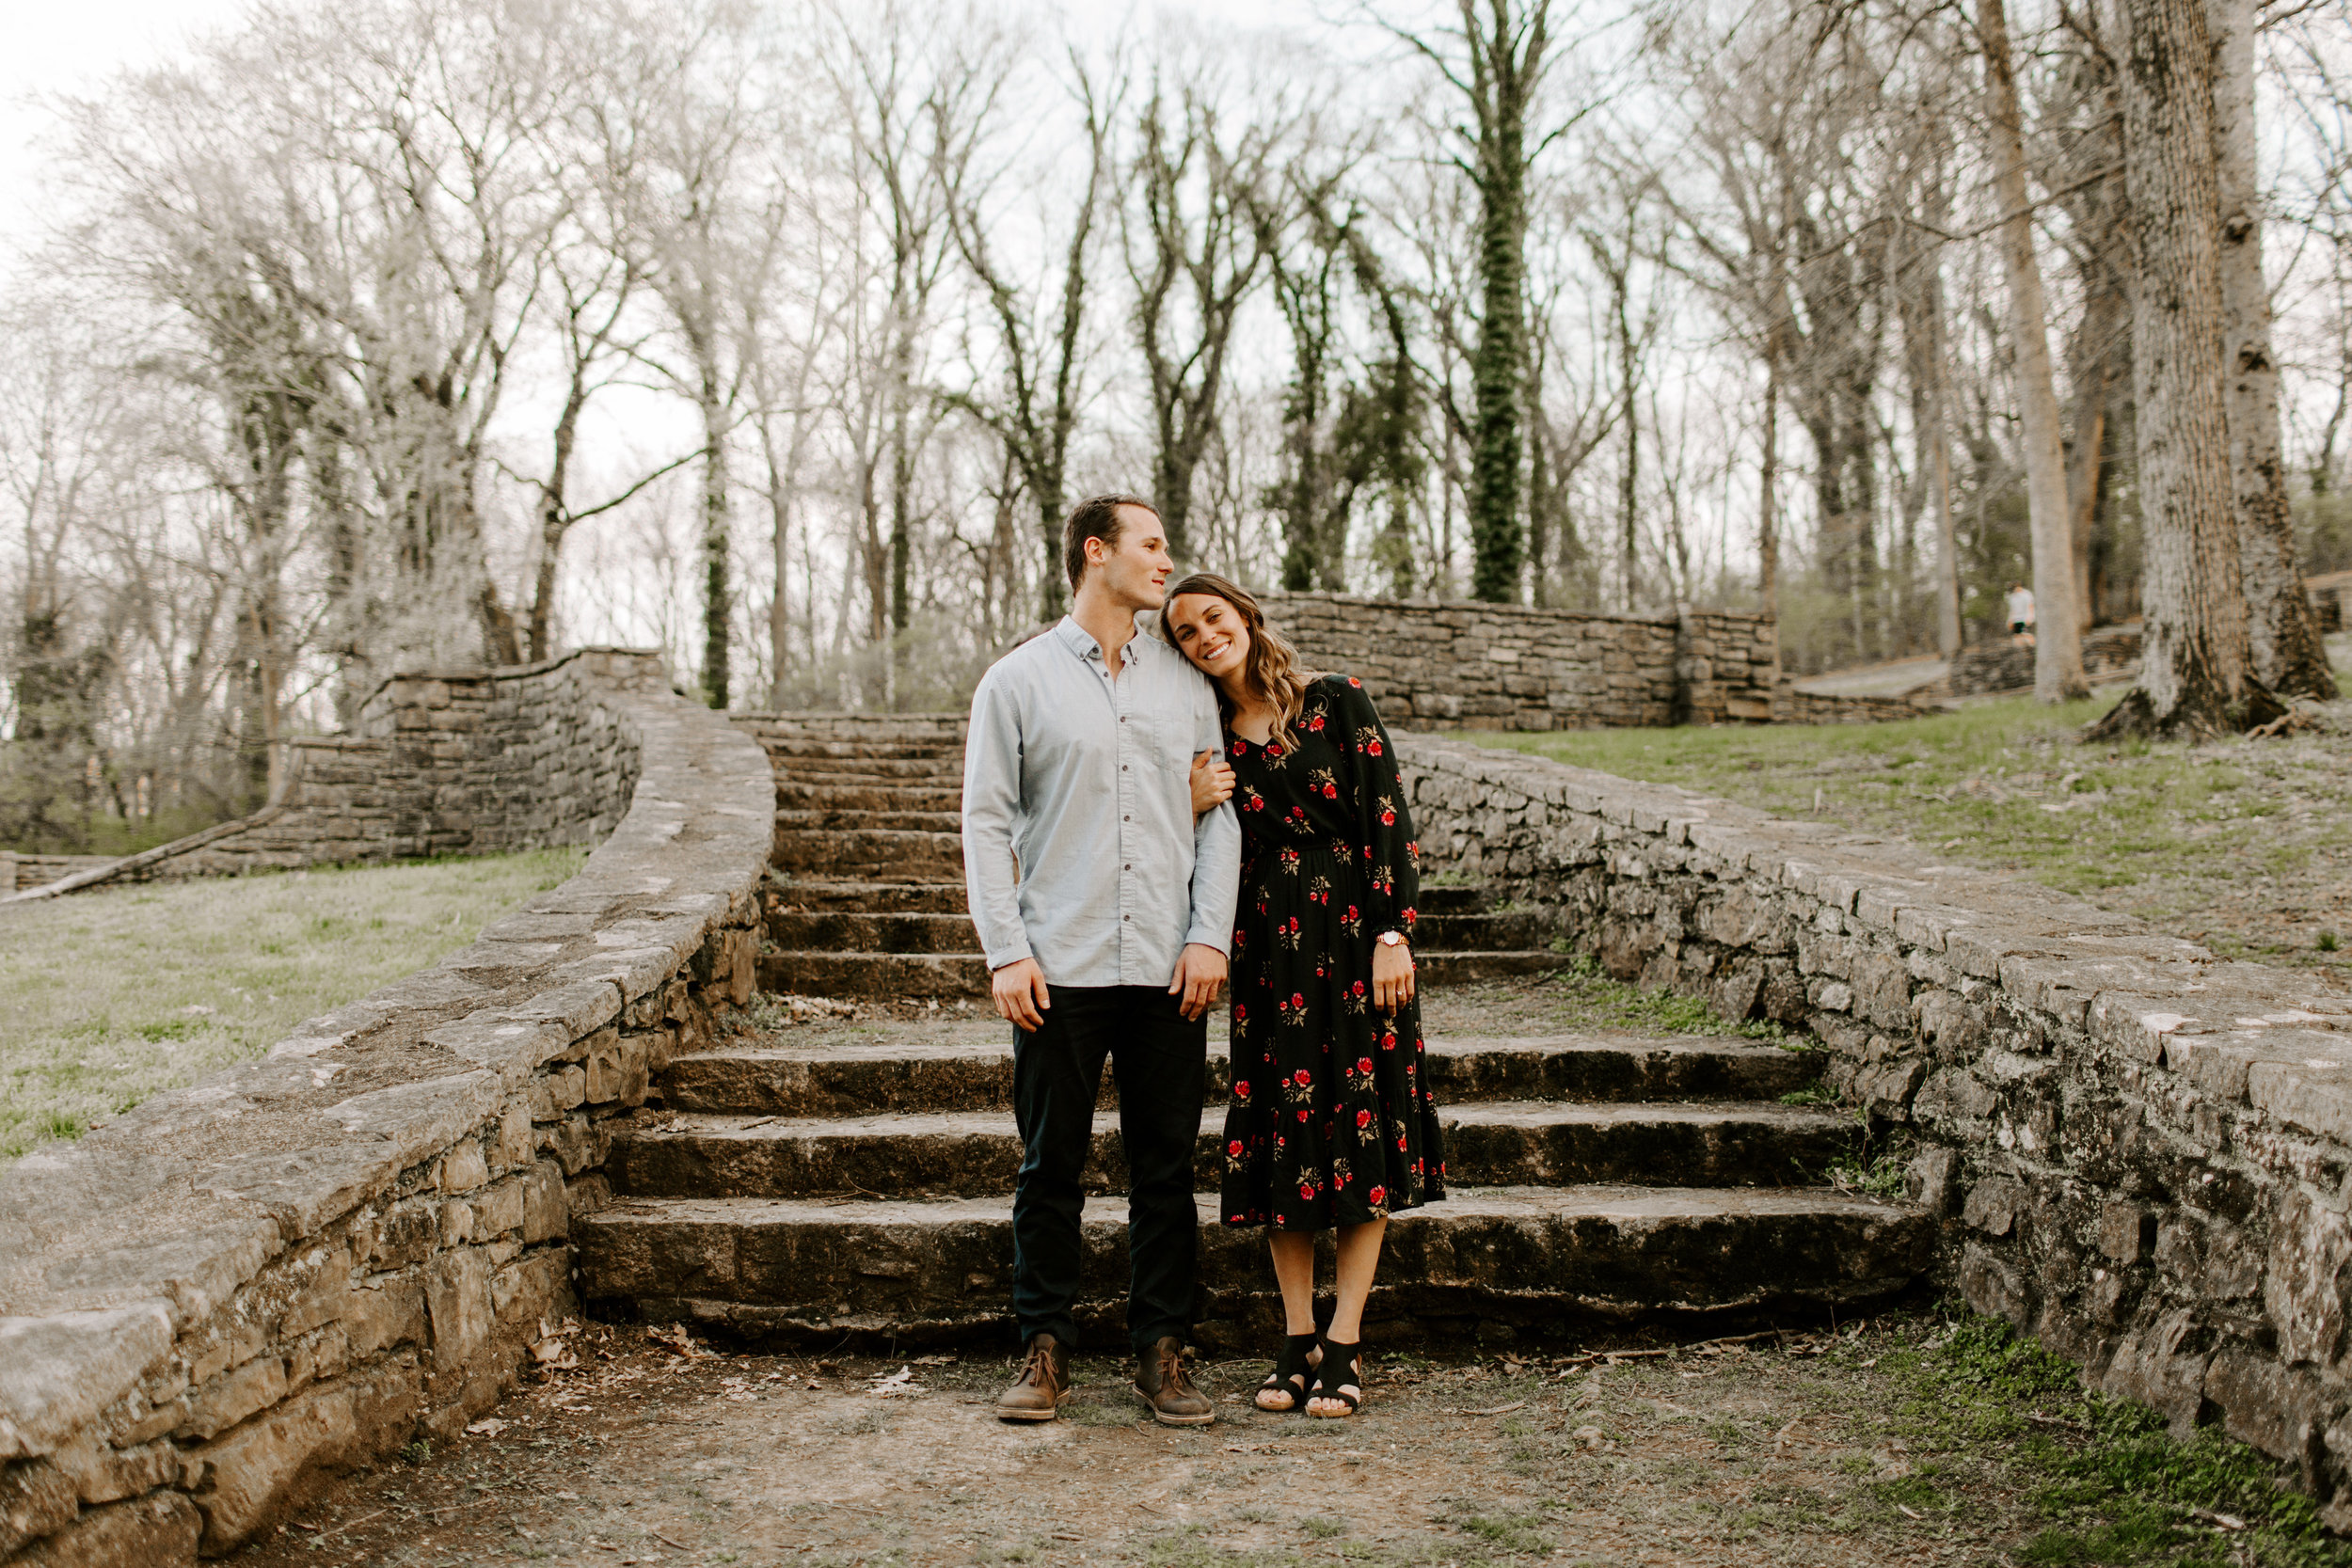 2018.03.16_kayleematt_nashville_engagement_elissavossphotography_previews_25.jpg